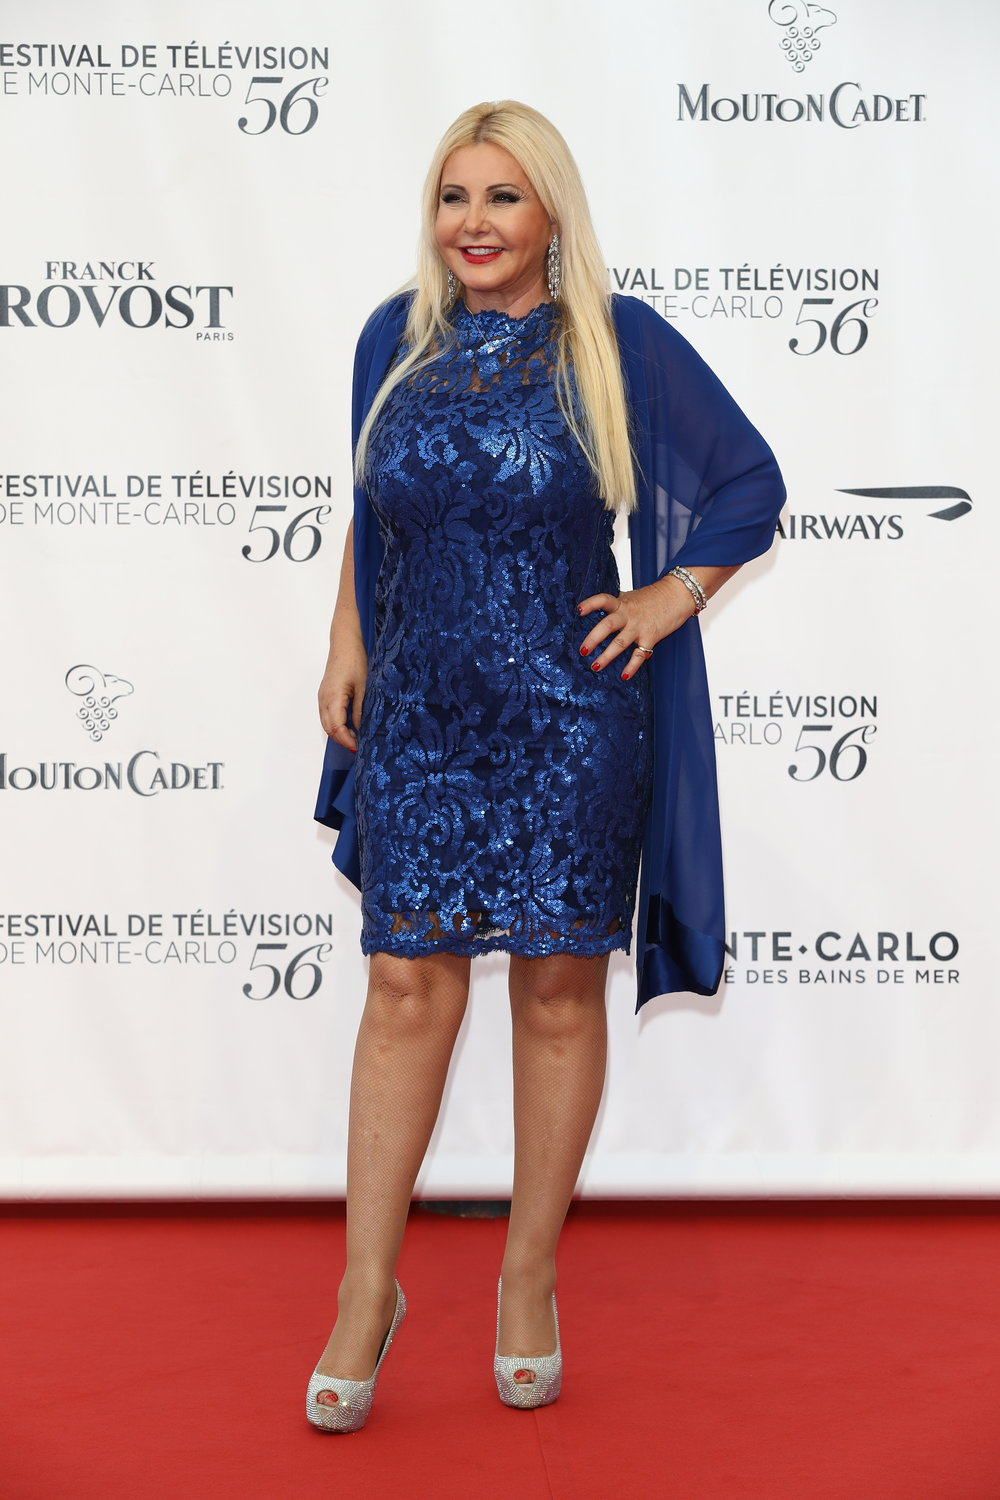 56th Monte Carlo TV Festival Opening Ceremony